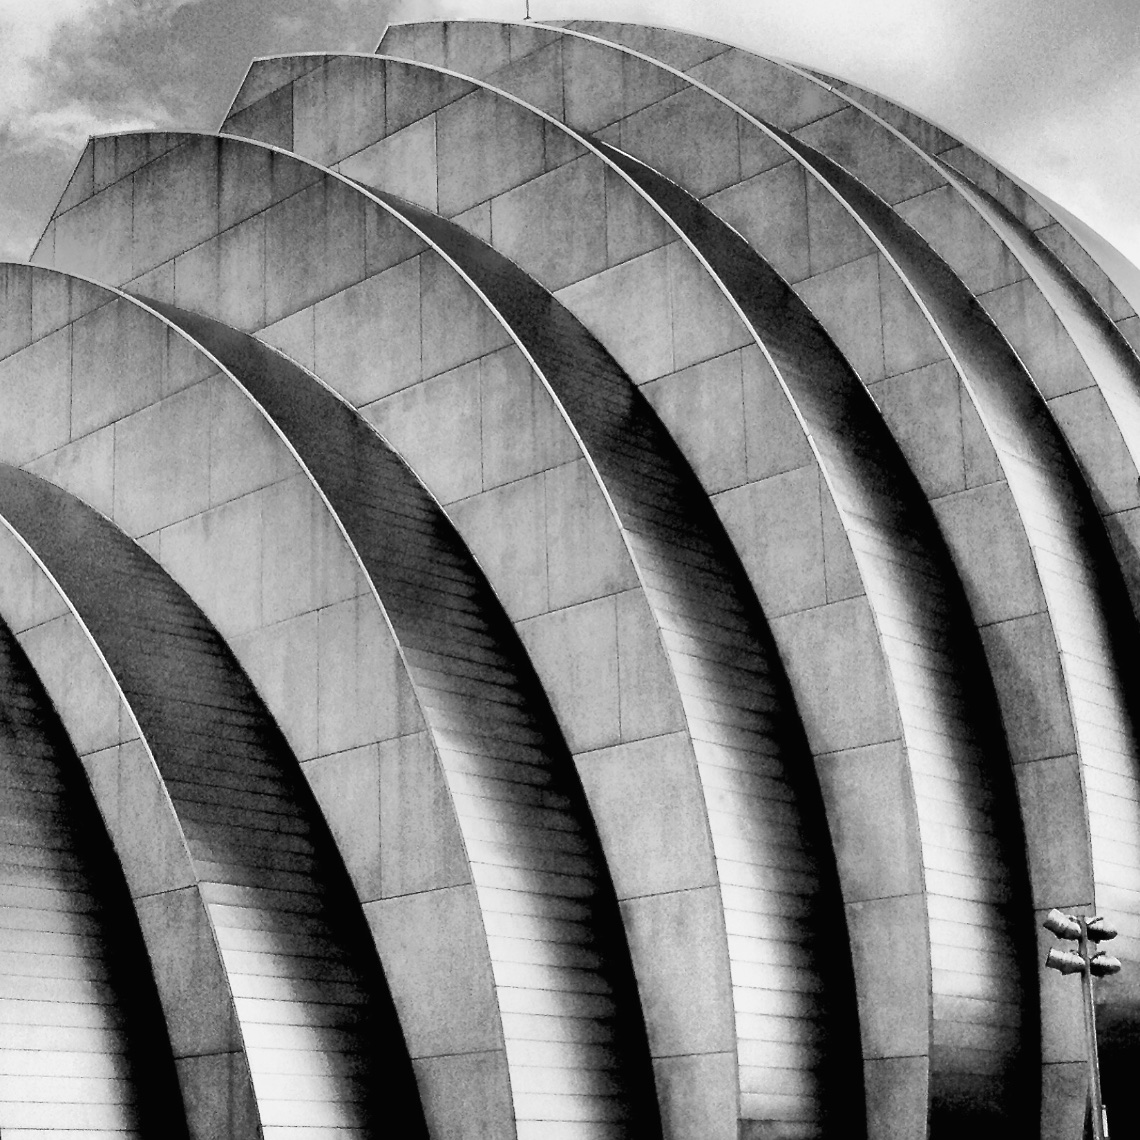 Kauffmann Center for Performing Arts, Kansas City